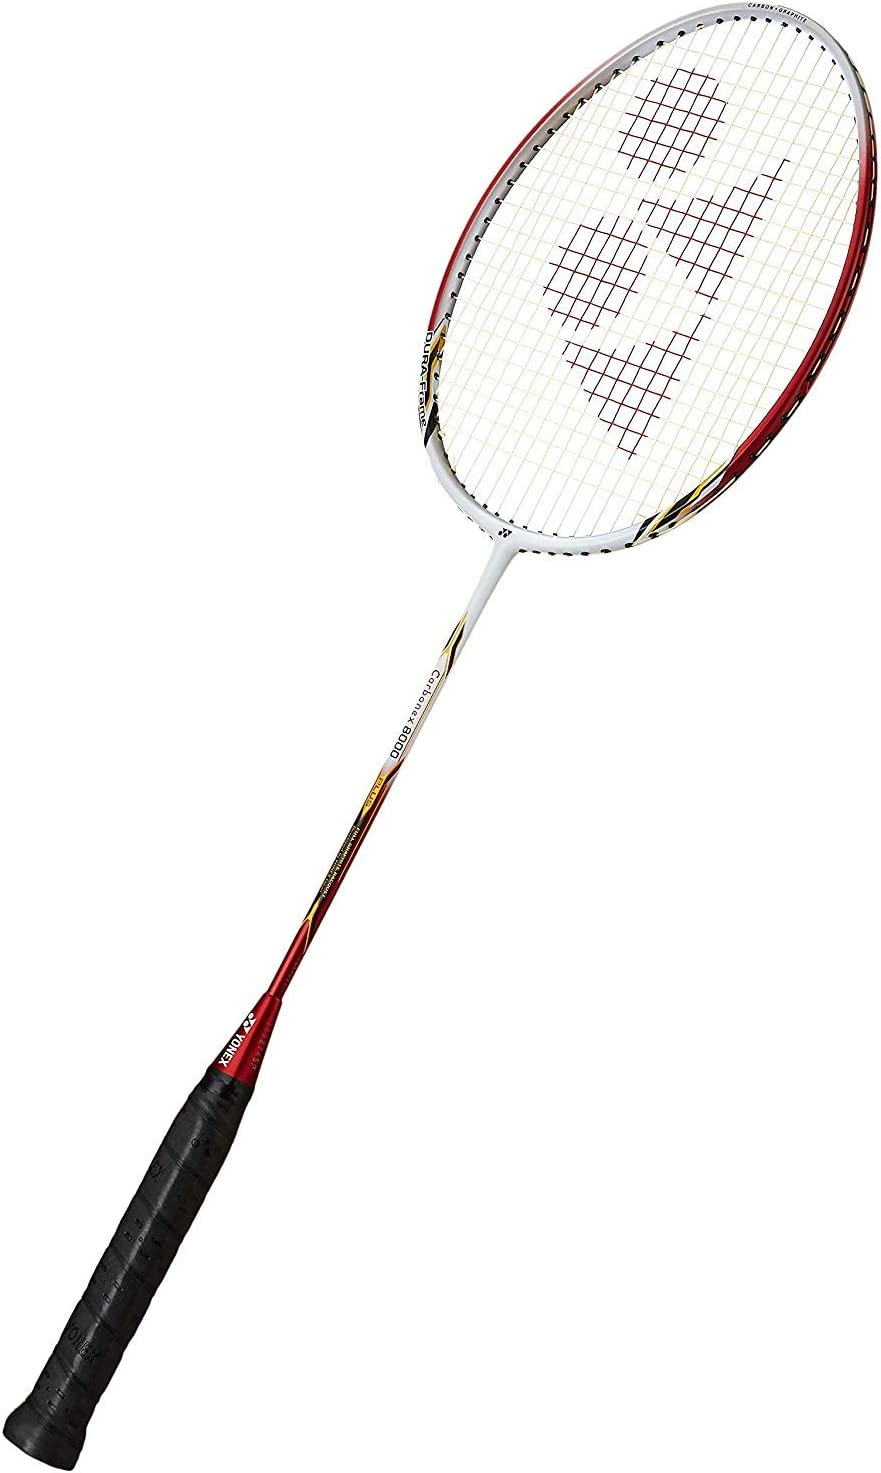 Yonex Carbonex 8000 Plus Badminton Racket Amazon De Sport Freizeit